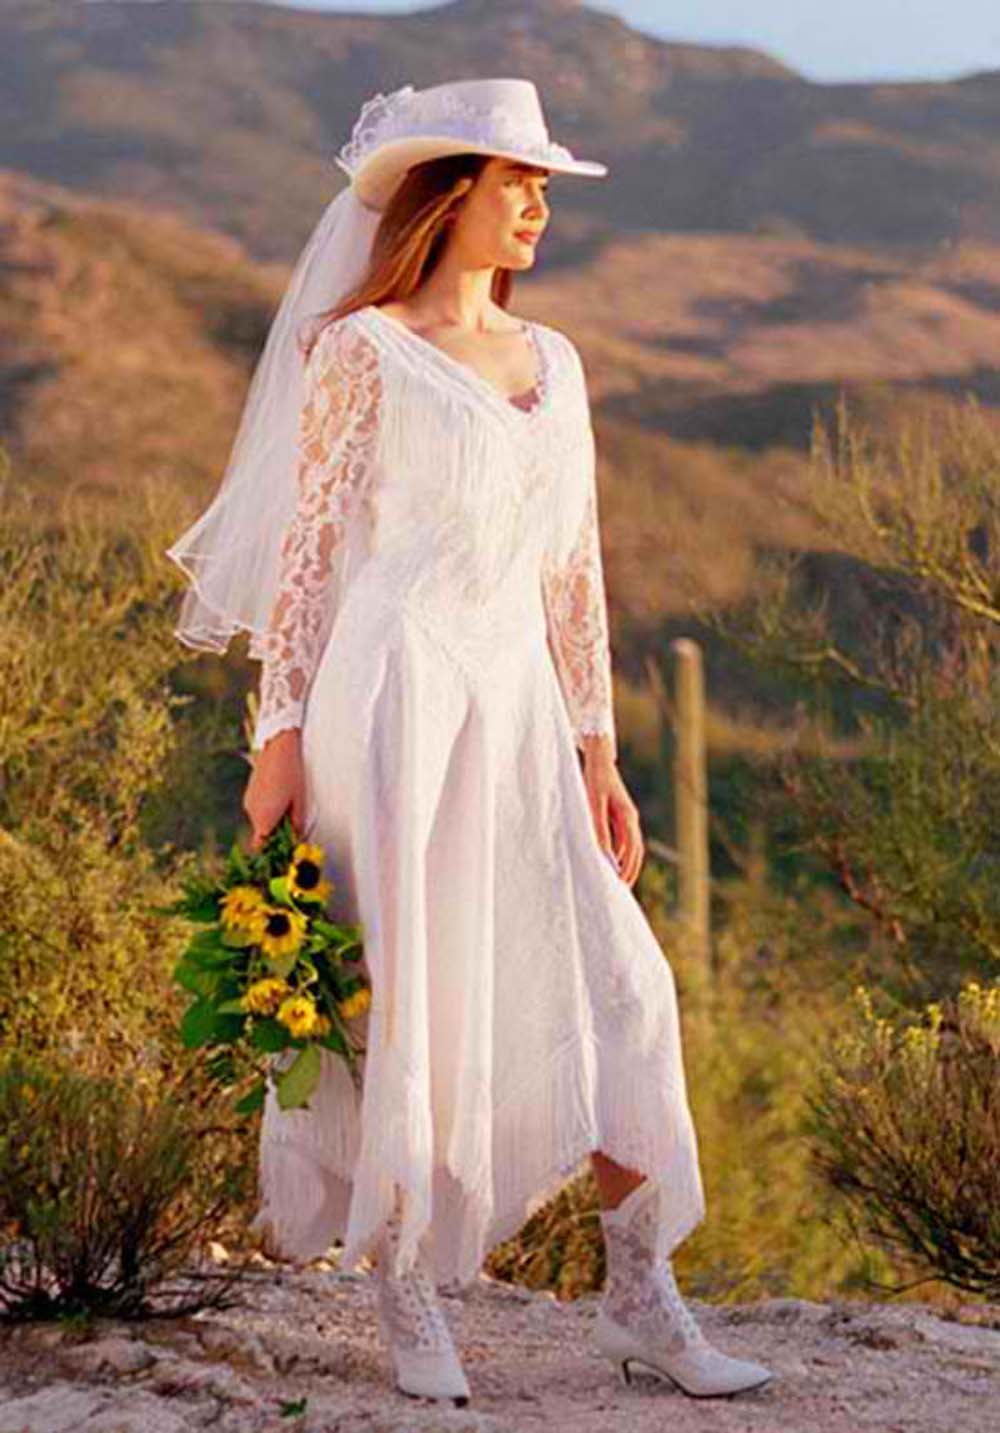 Western Dresses On Wedding Find The Latest News